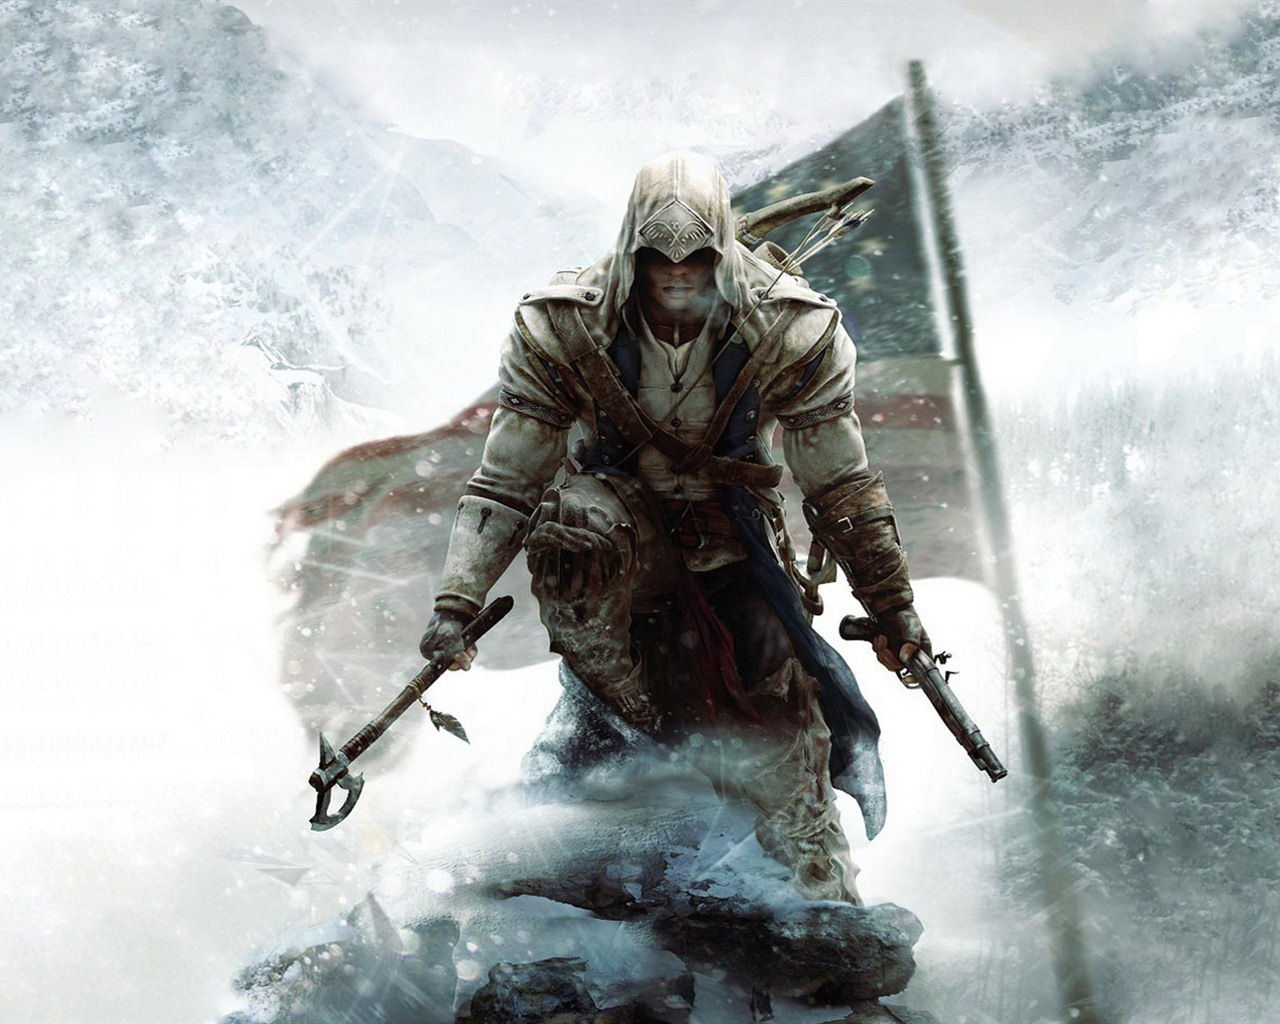 Assassins creed 3 hd wallpapers 20 1280x1024 wallpaper download assassins creed 3 hd wallpapers 20 1280x1024 voltagebd Image collections